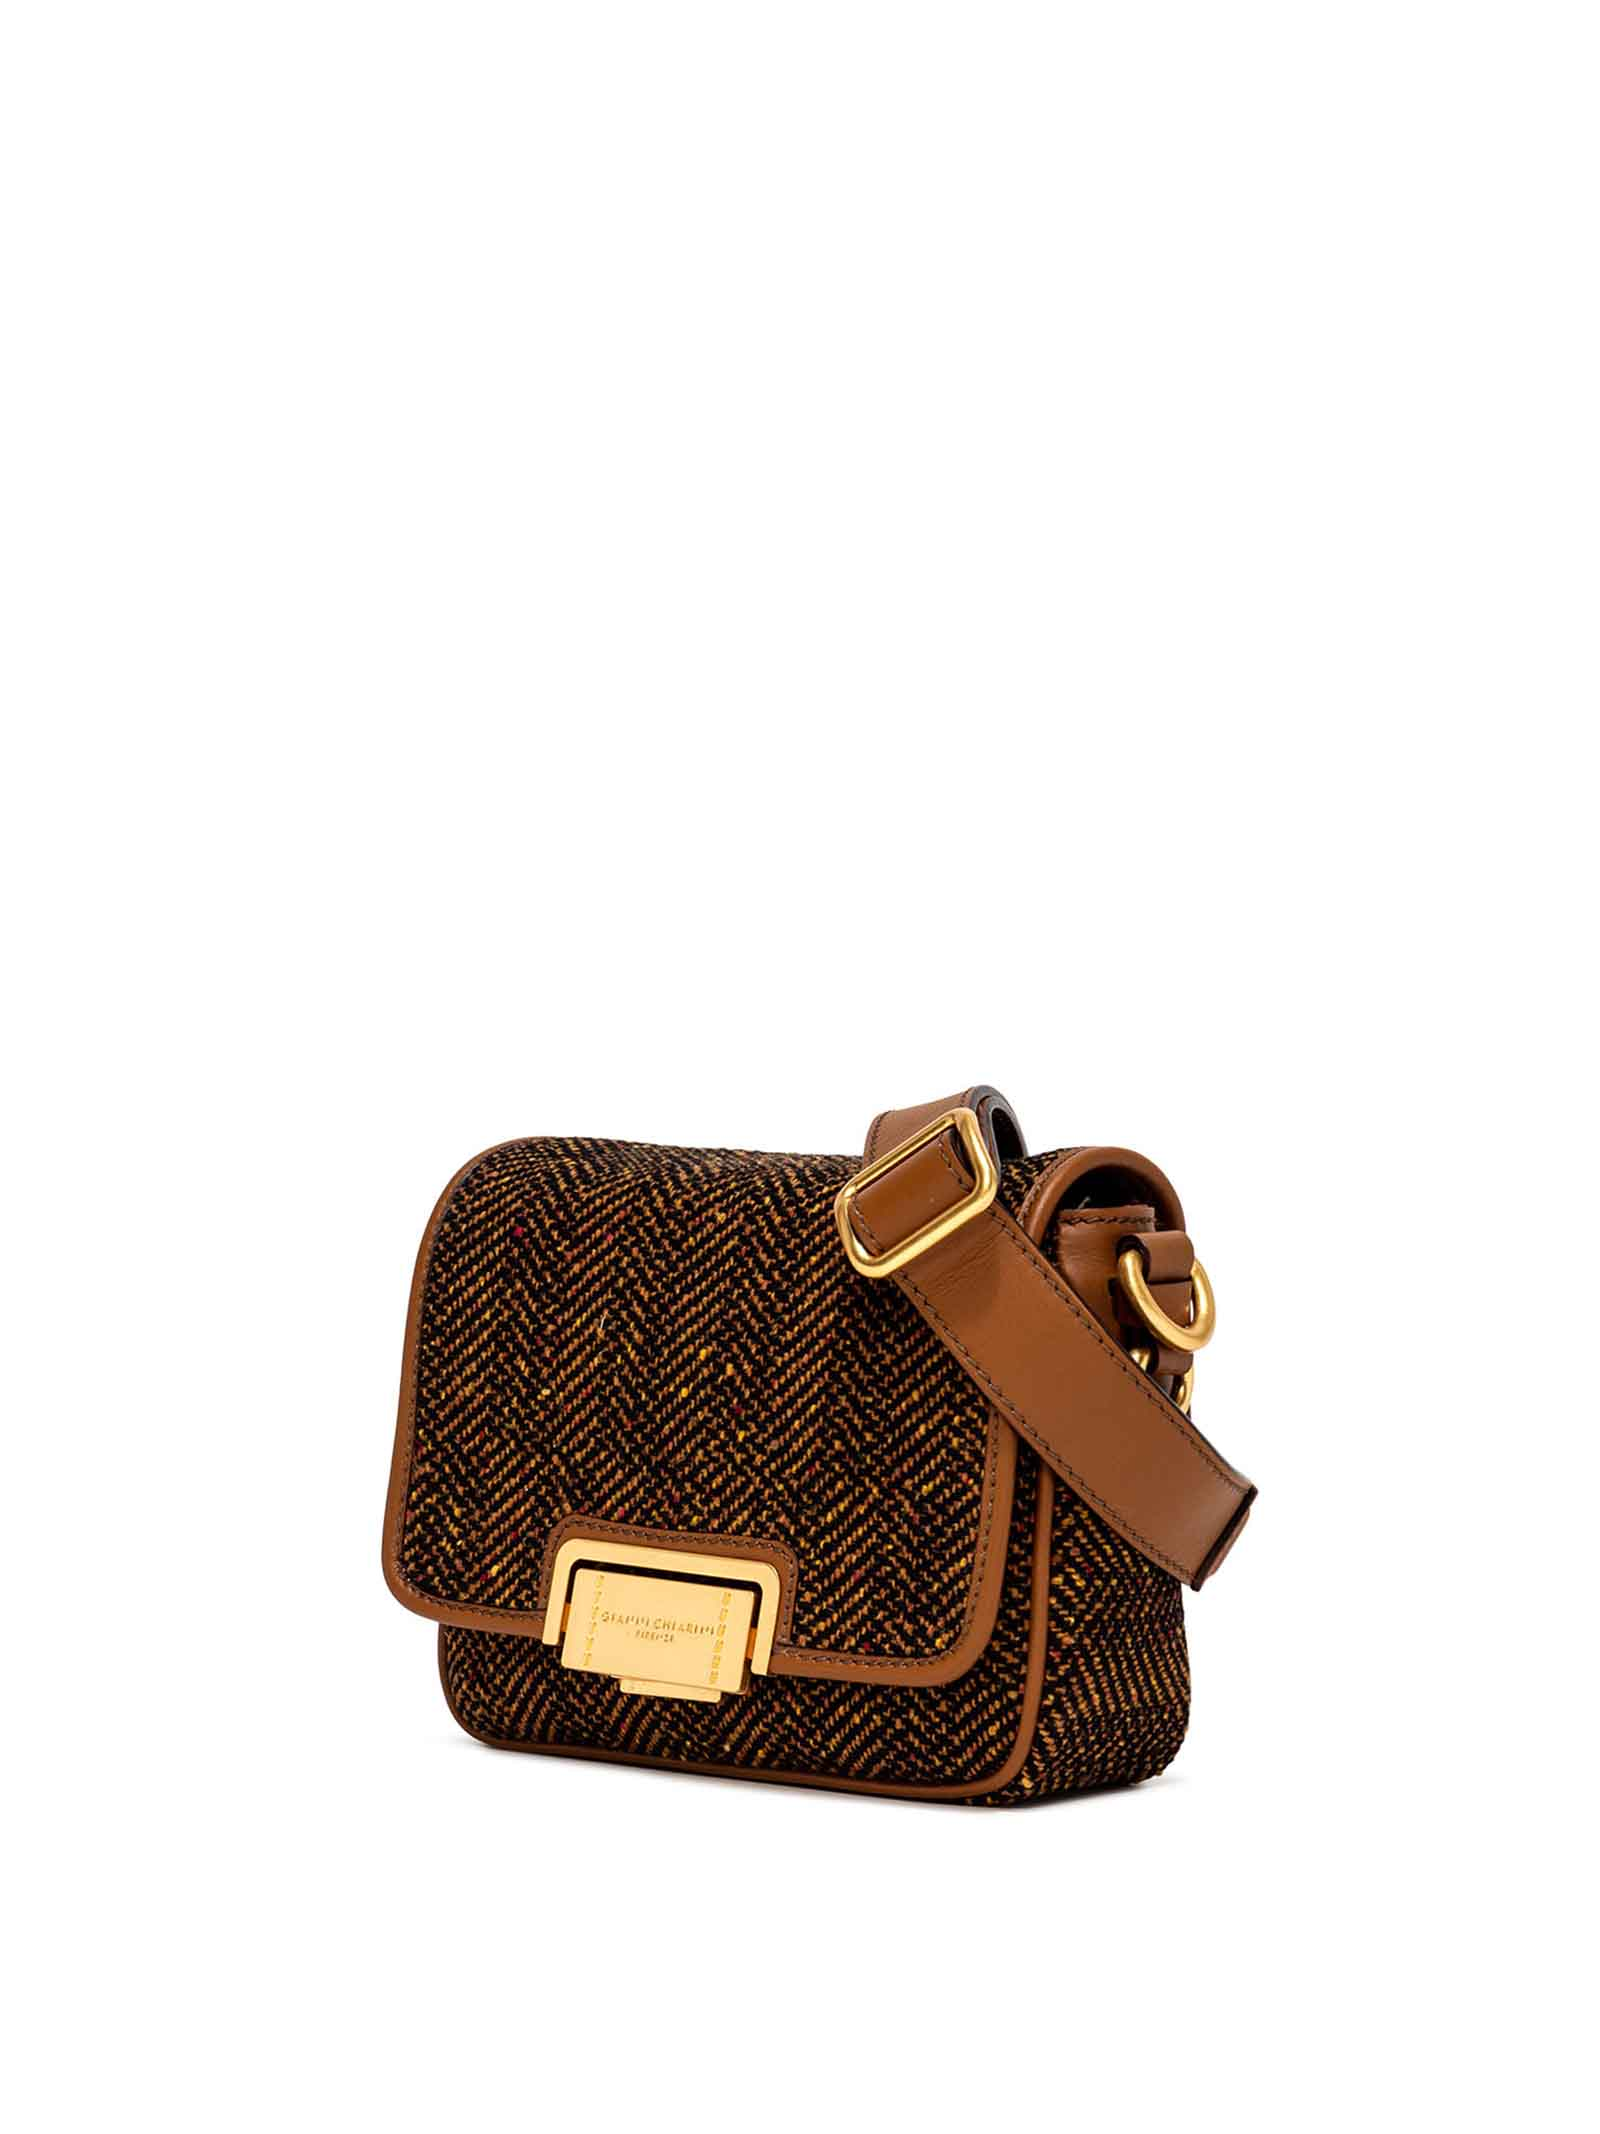 Women's Alyssa Shoulder Bag in Tan Fabric with Tone Leather Inserts and Adjustable Leather Shoulder Strap and Gold Buckle Gianni Chiarini | Bags and backpacks | BS902010313